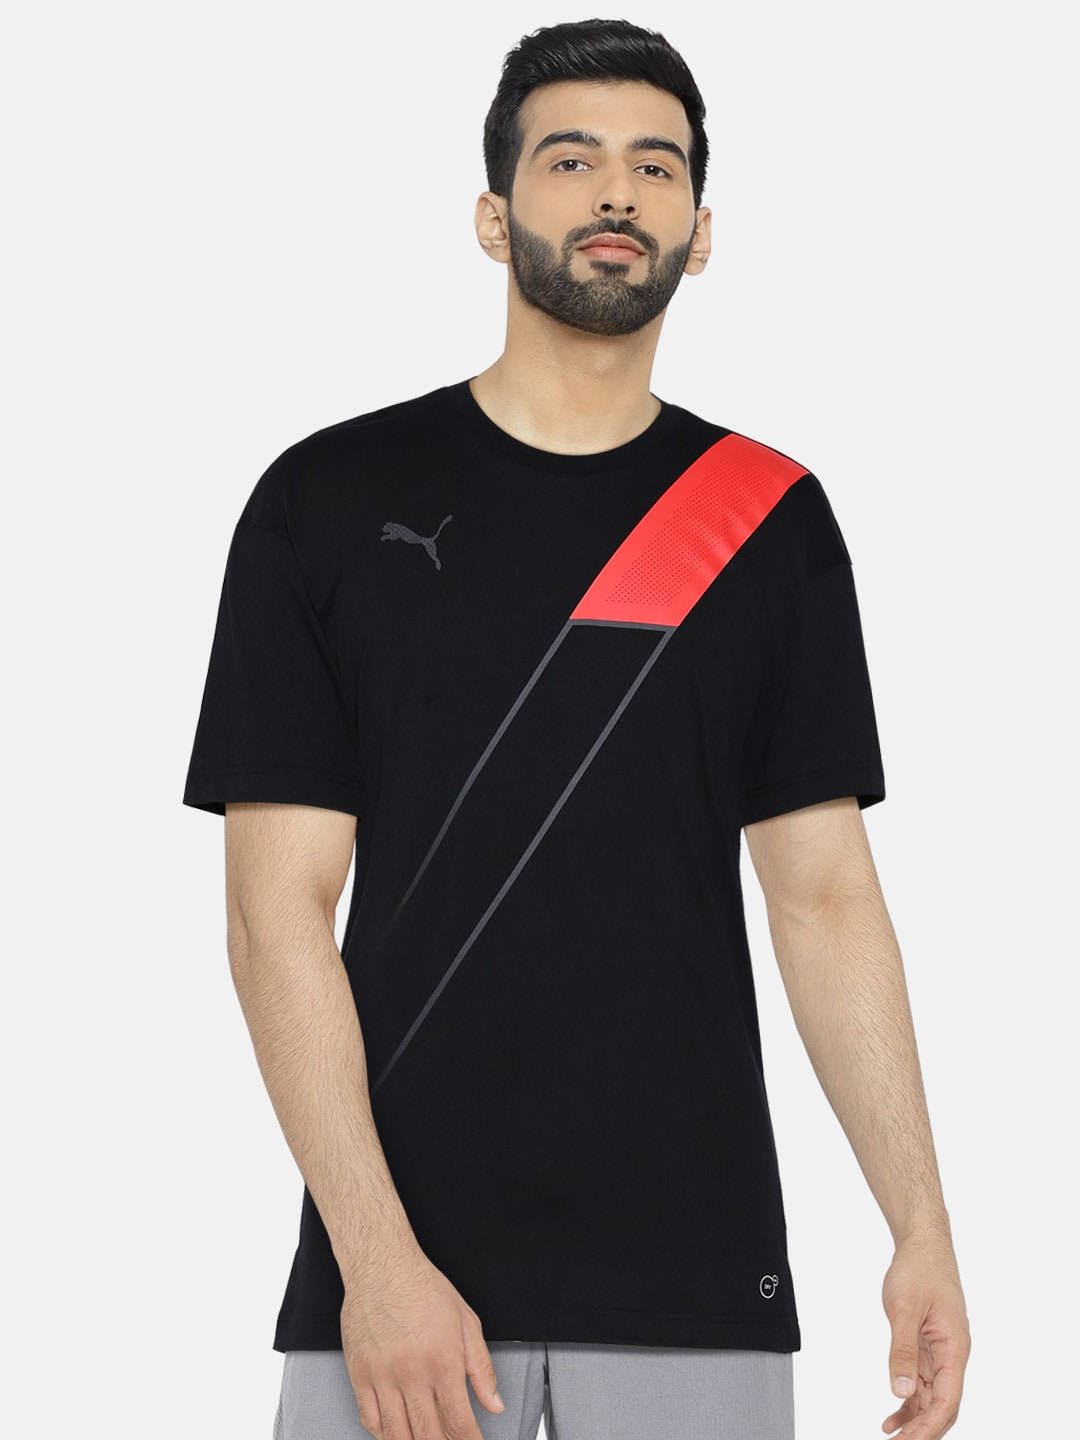 058d043a Sports T-shirts - Buy Mens Sports T-Shirt Online in India |Myntra